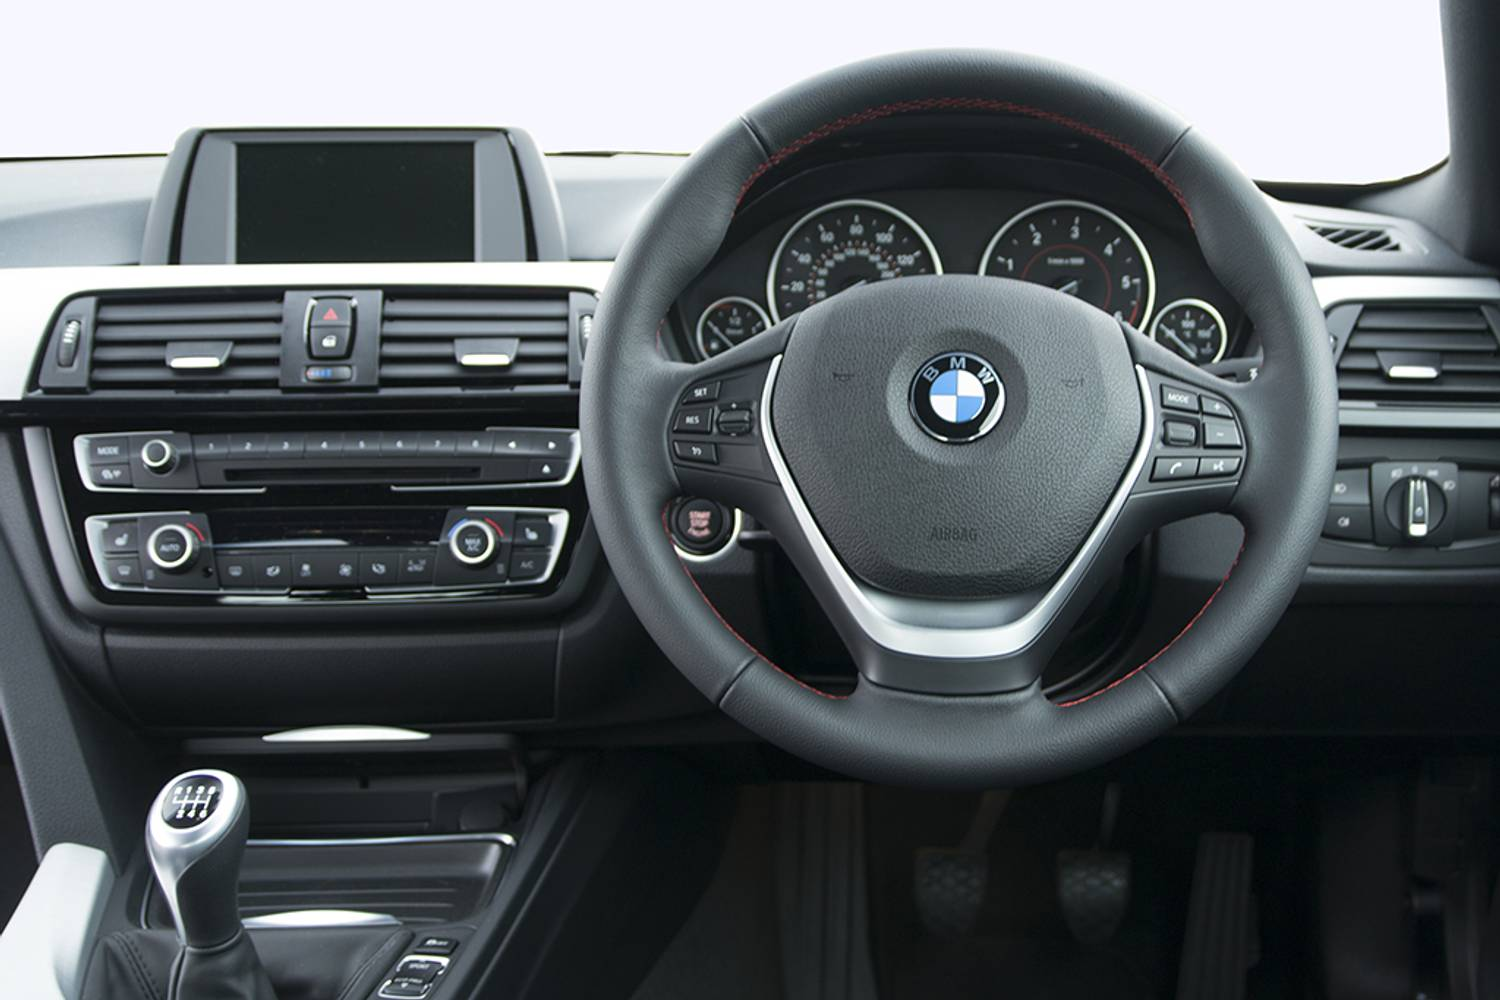 BMW 4 Series Coupe 2dr interior